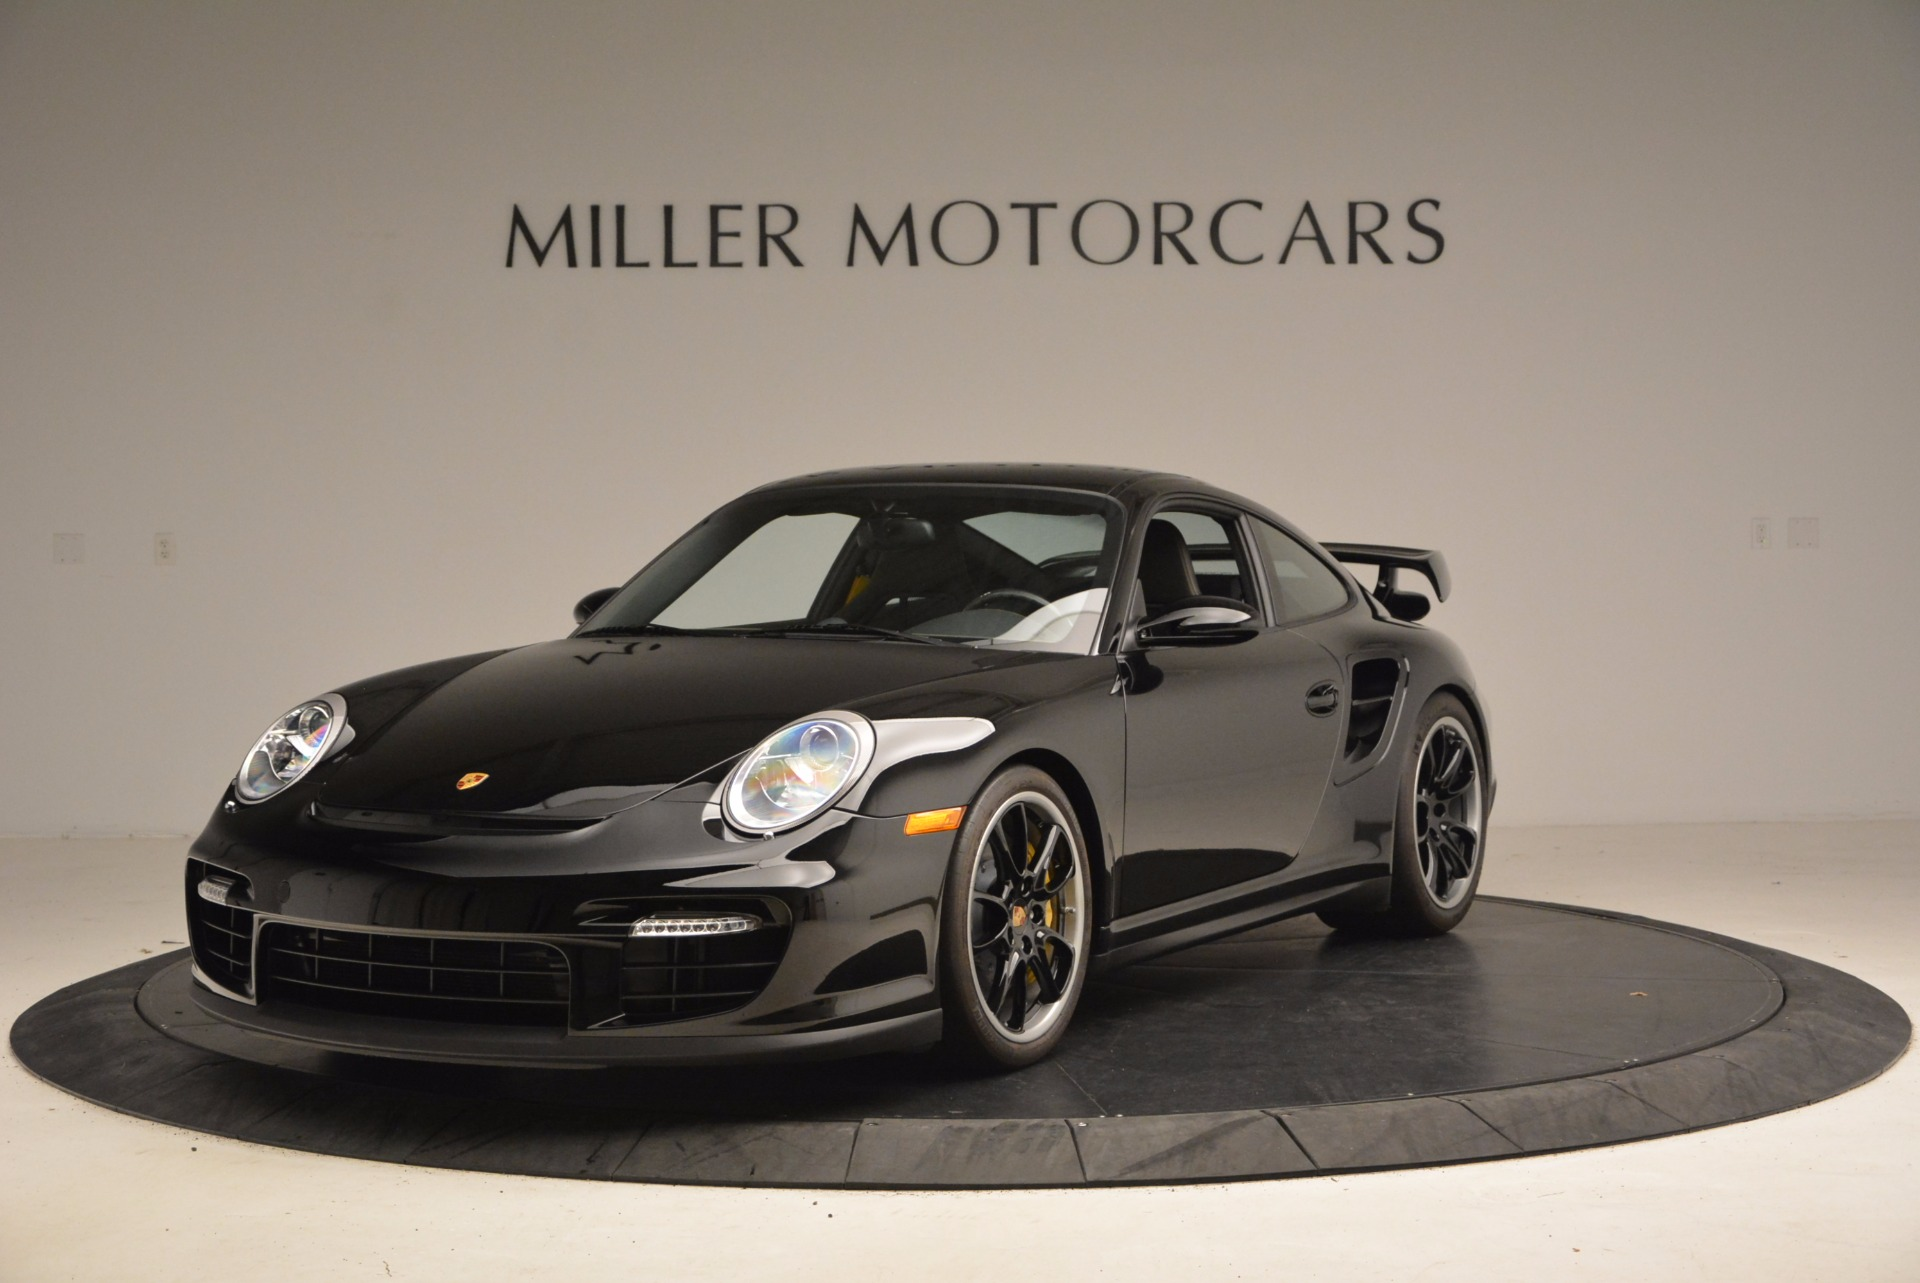 Used 2008 Porsche 911 GT2 for sale Sold at Aston Martin of Greenwich in Greenwich CT 06830 1